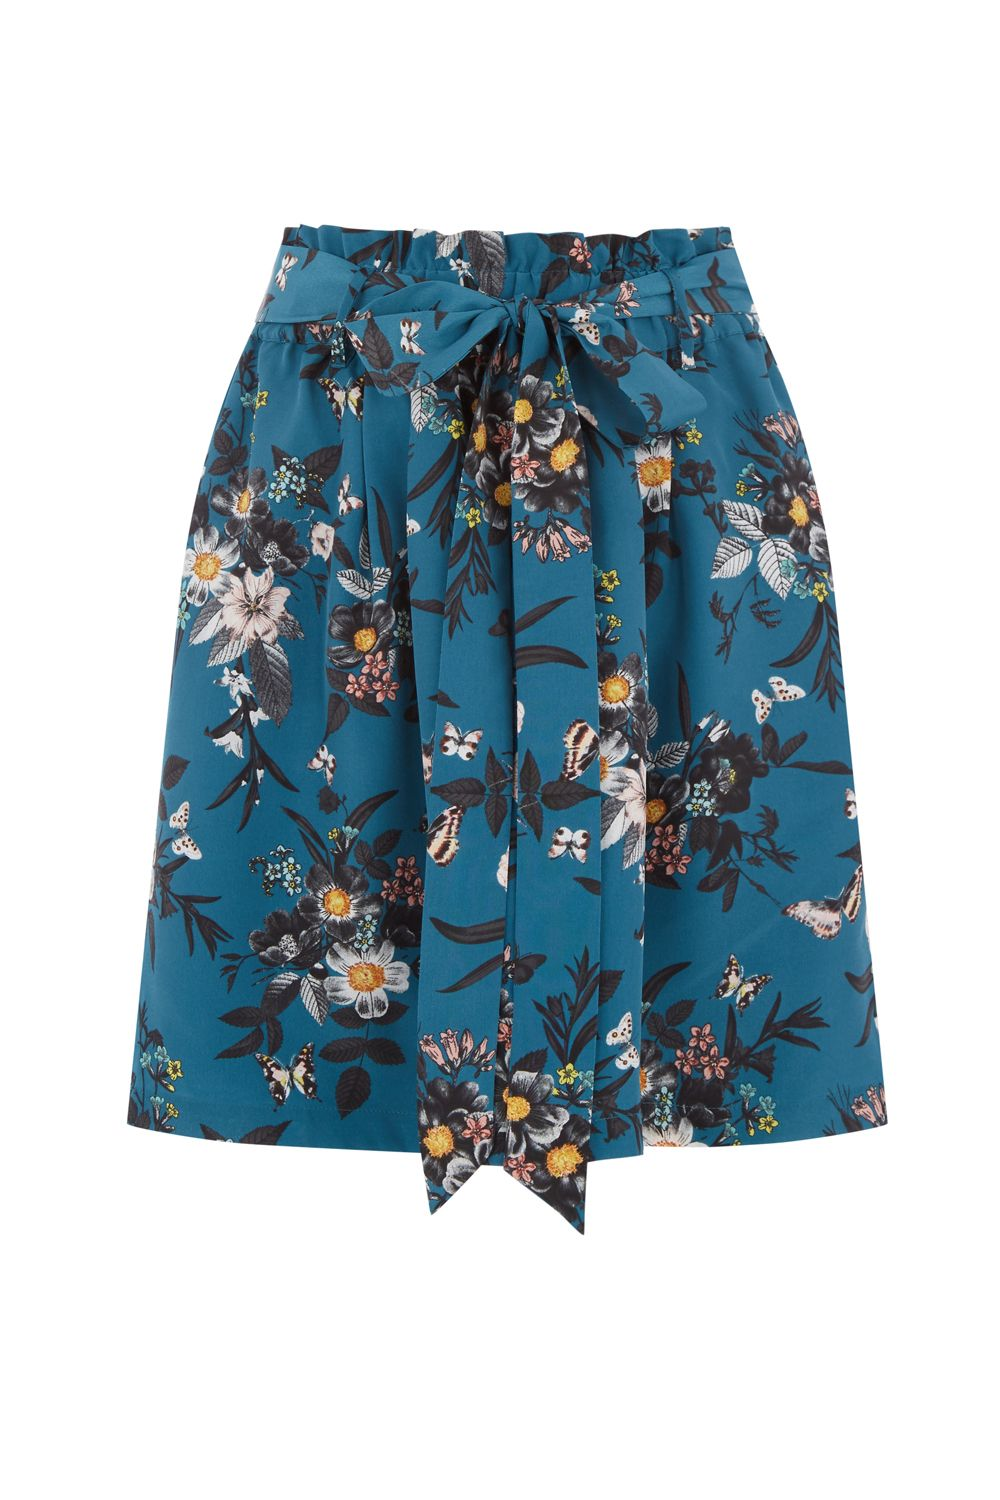 Oasis SHIPWRECKED PAPERBAG SKIRT, Multi-Coloured